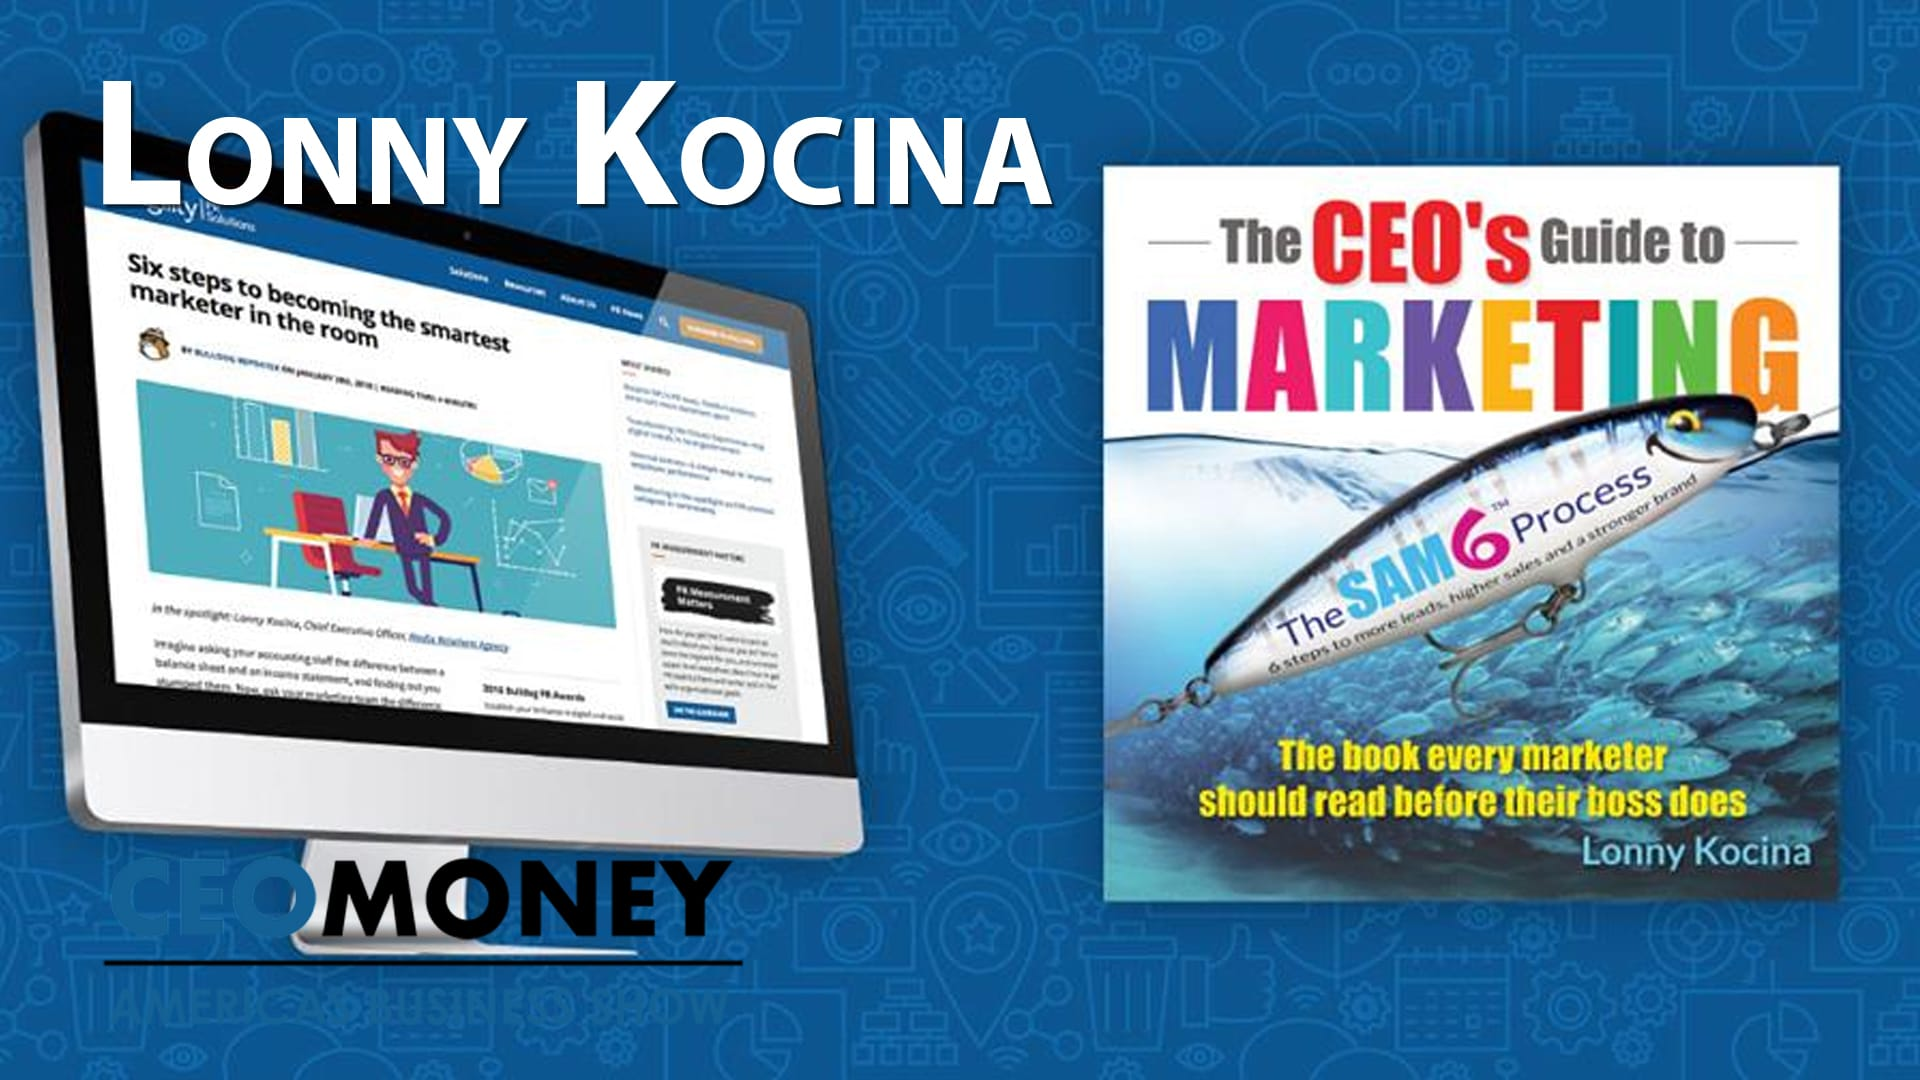 Lonny Kocina has 6 steps to create laser-focused marketing campaigns that get results